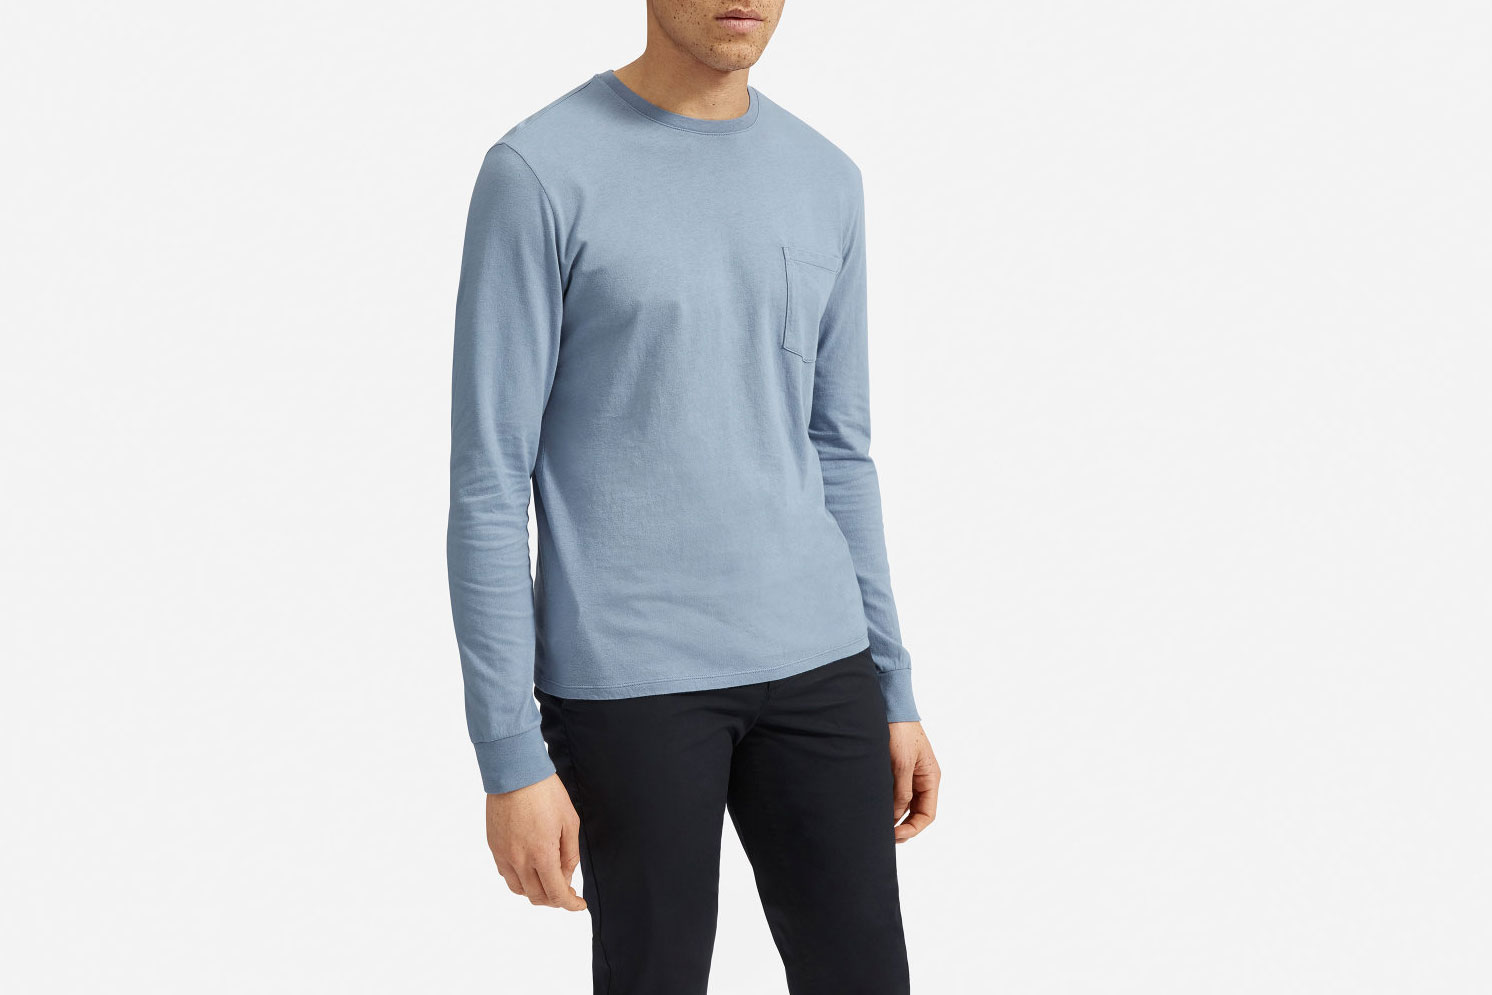 Everlane Cotton Long-Sleeved Crew